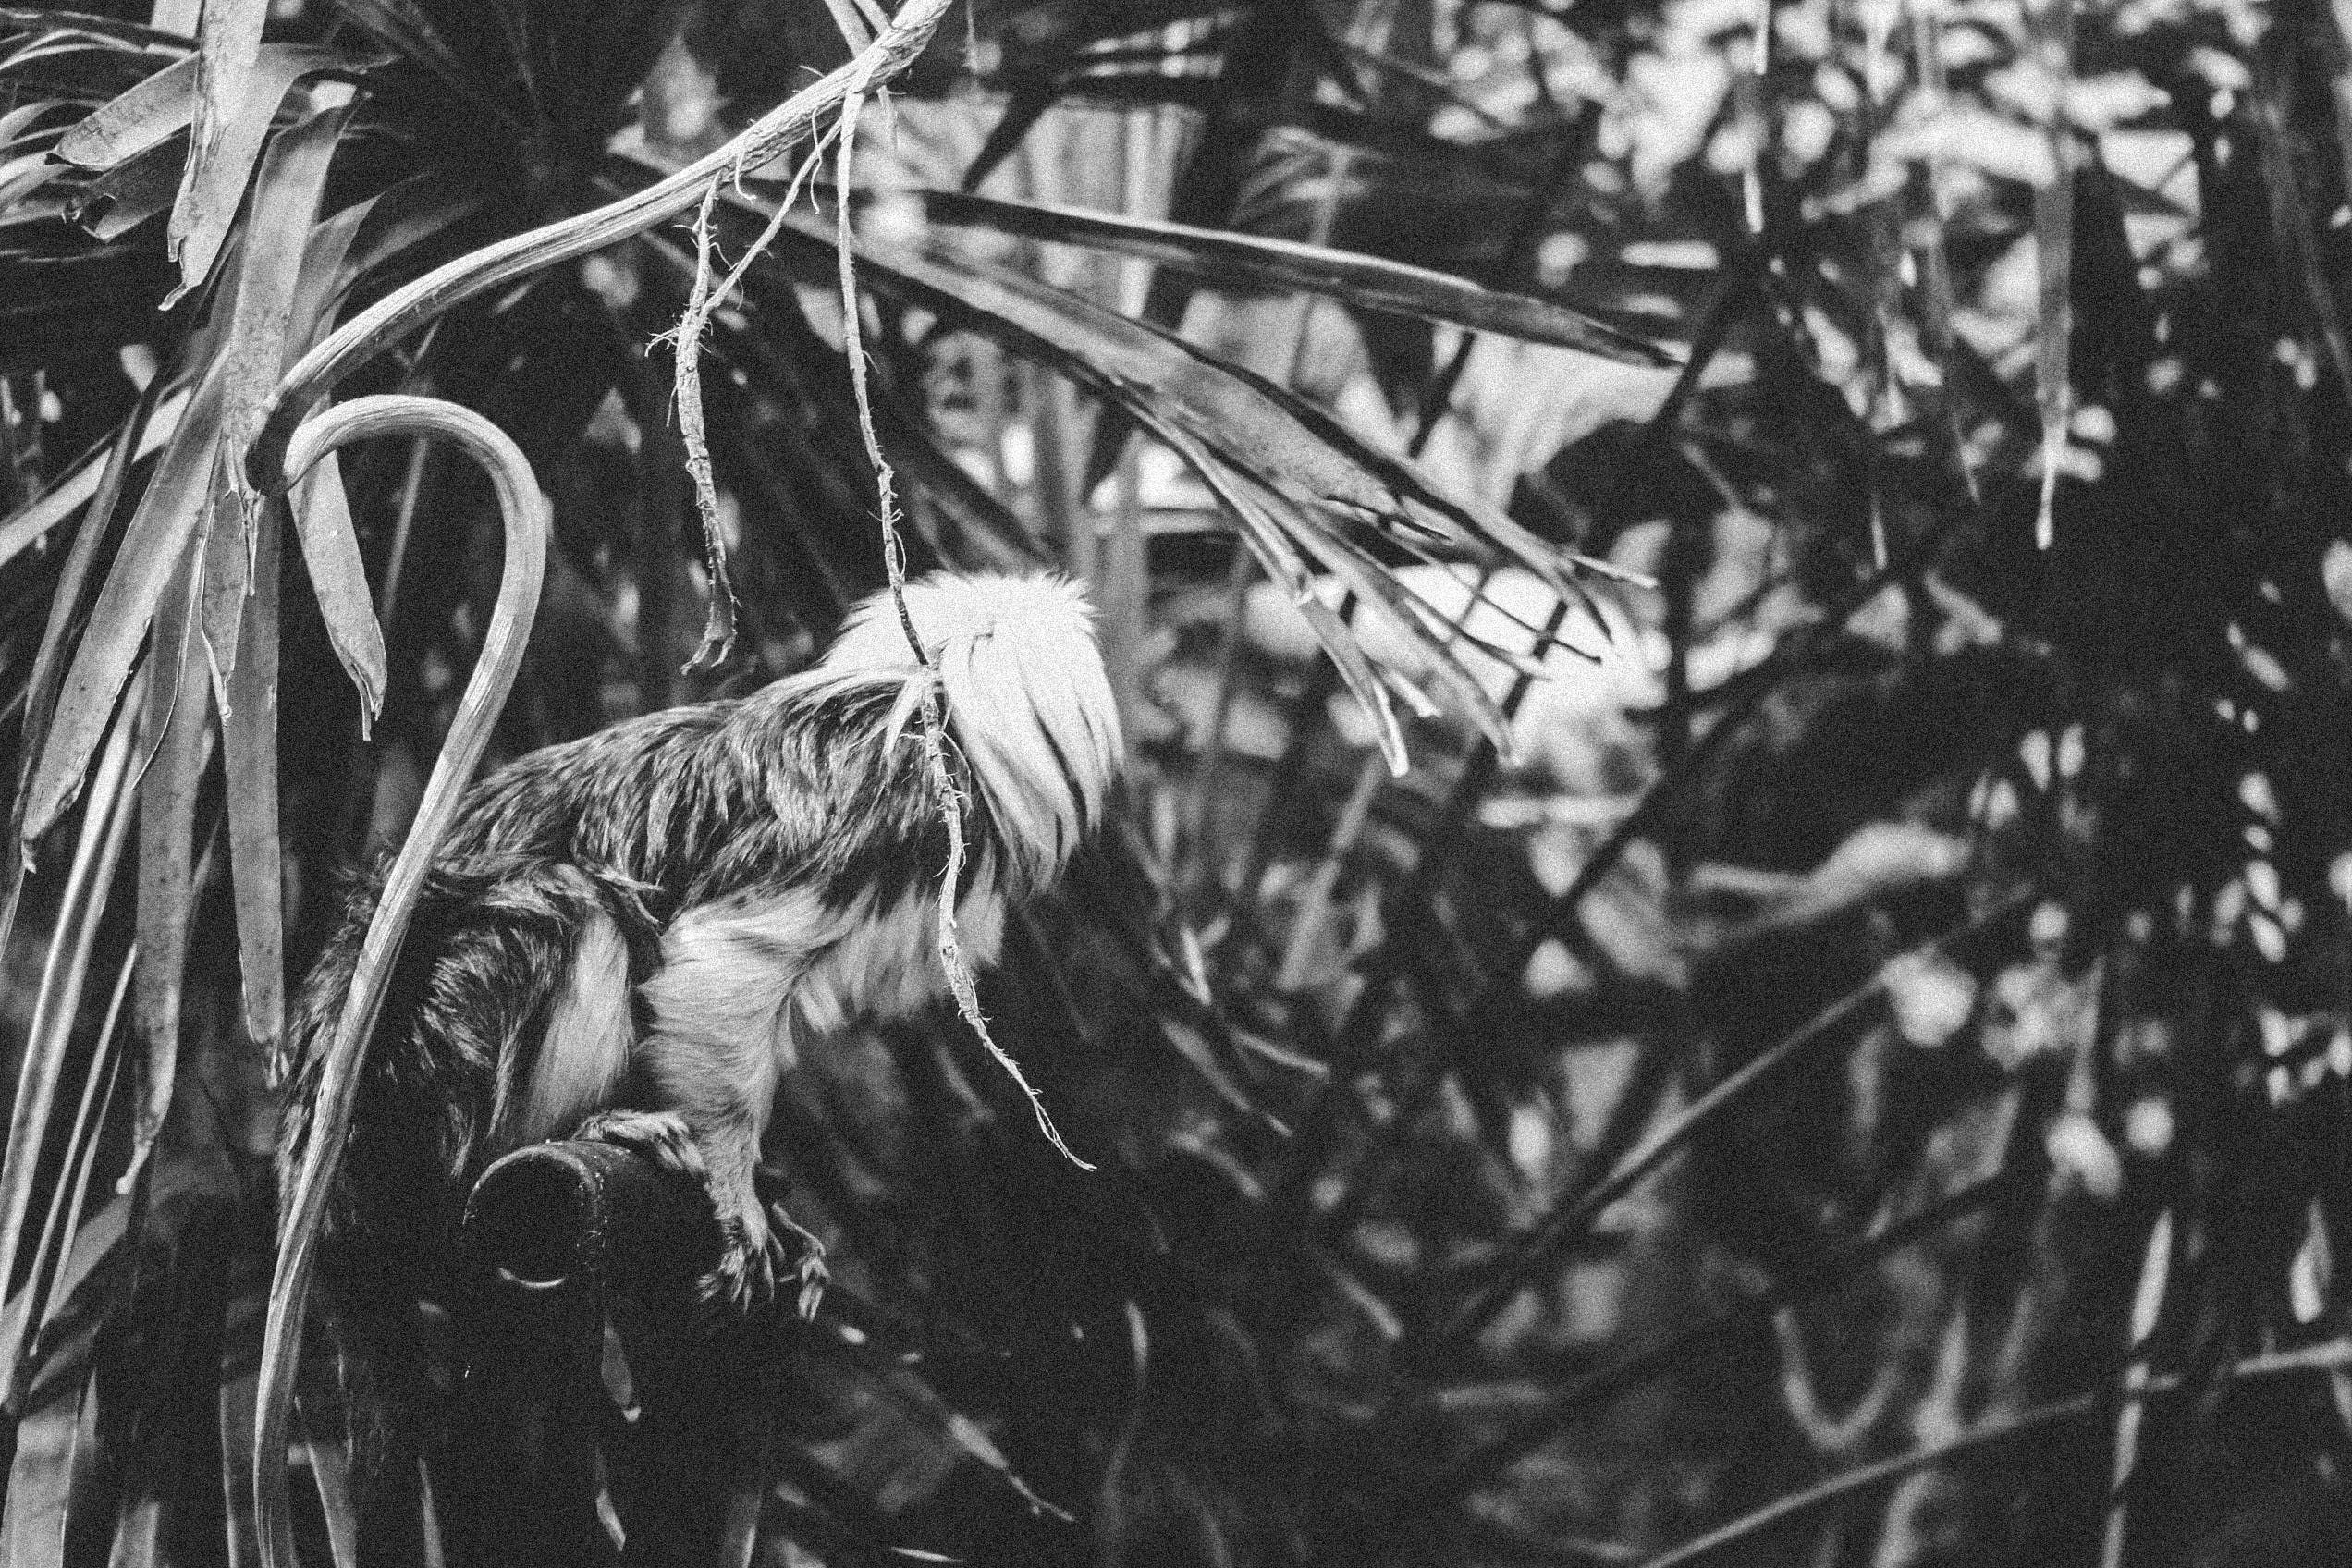 Grayscale Photography of Animal Perching on Metal Near Plants